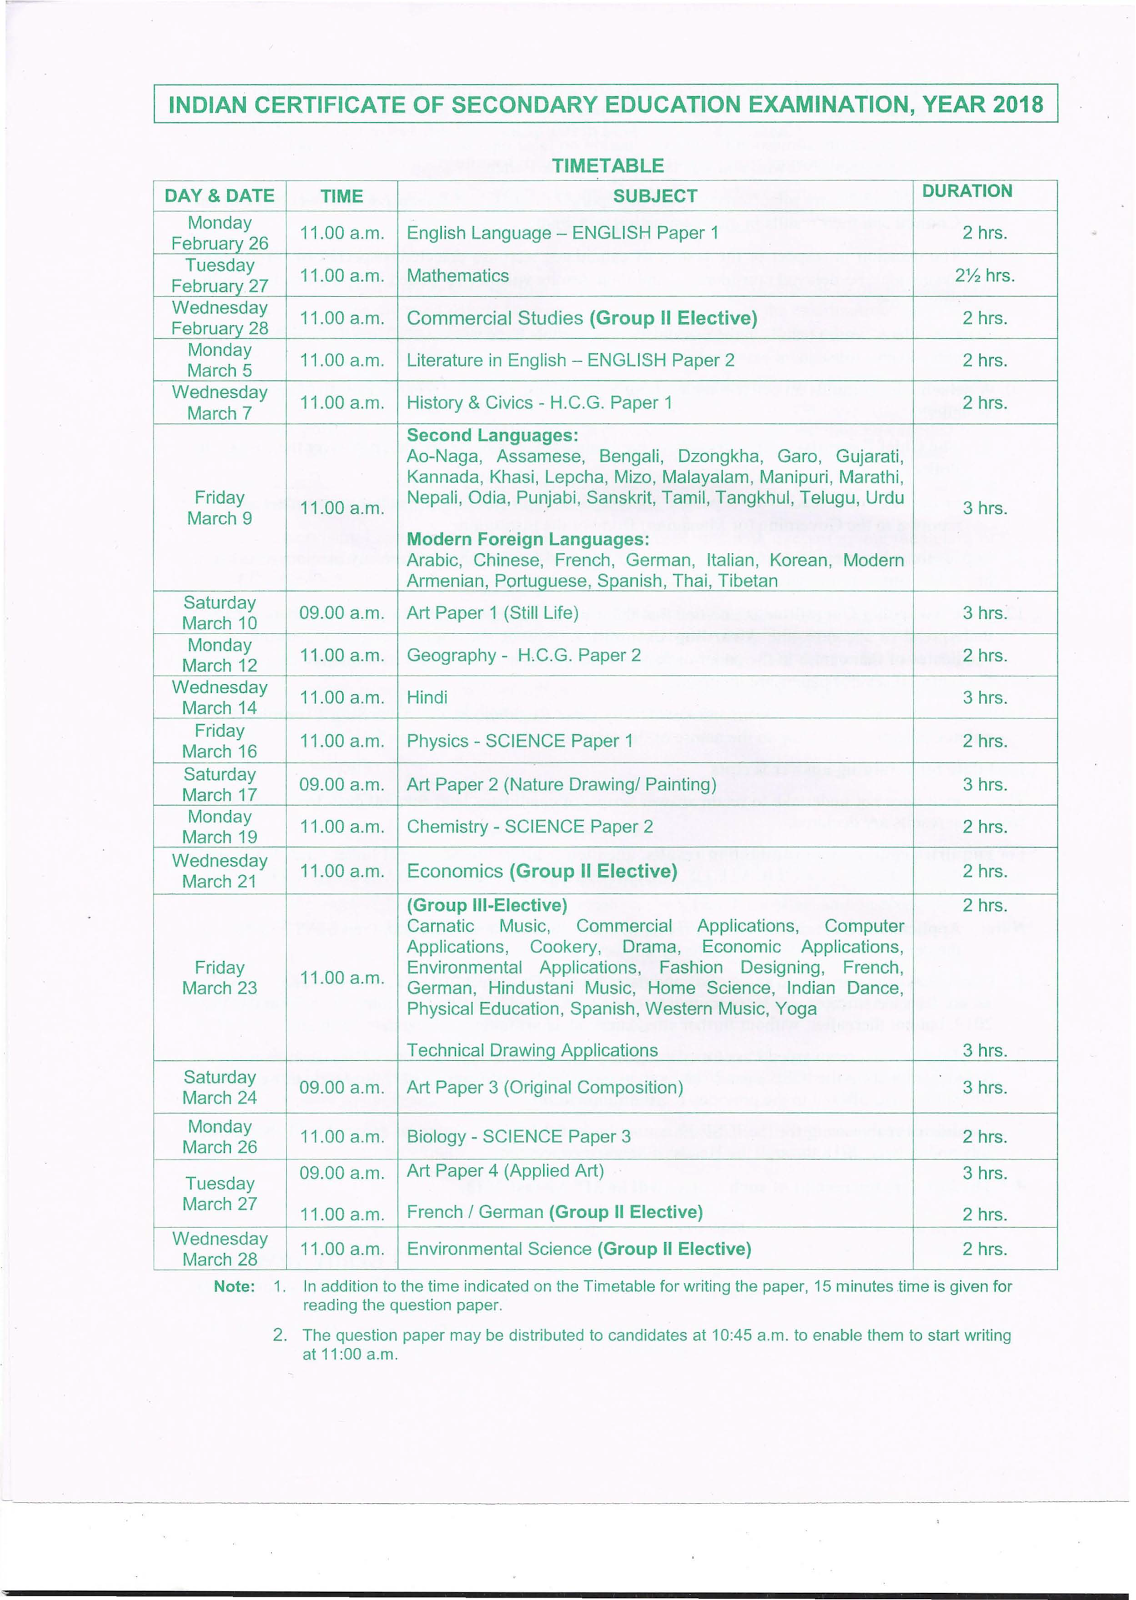 ICSE 2018 Time Table